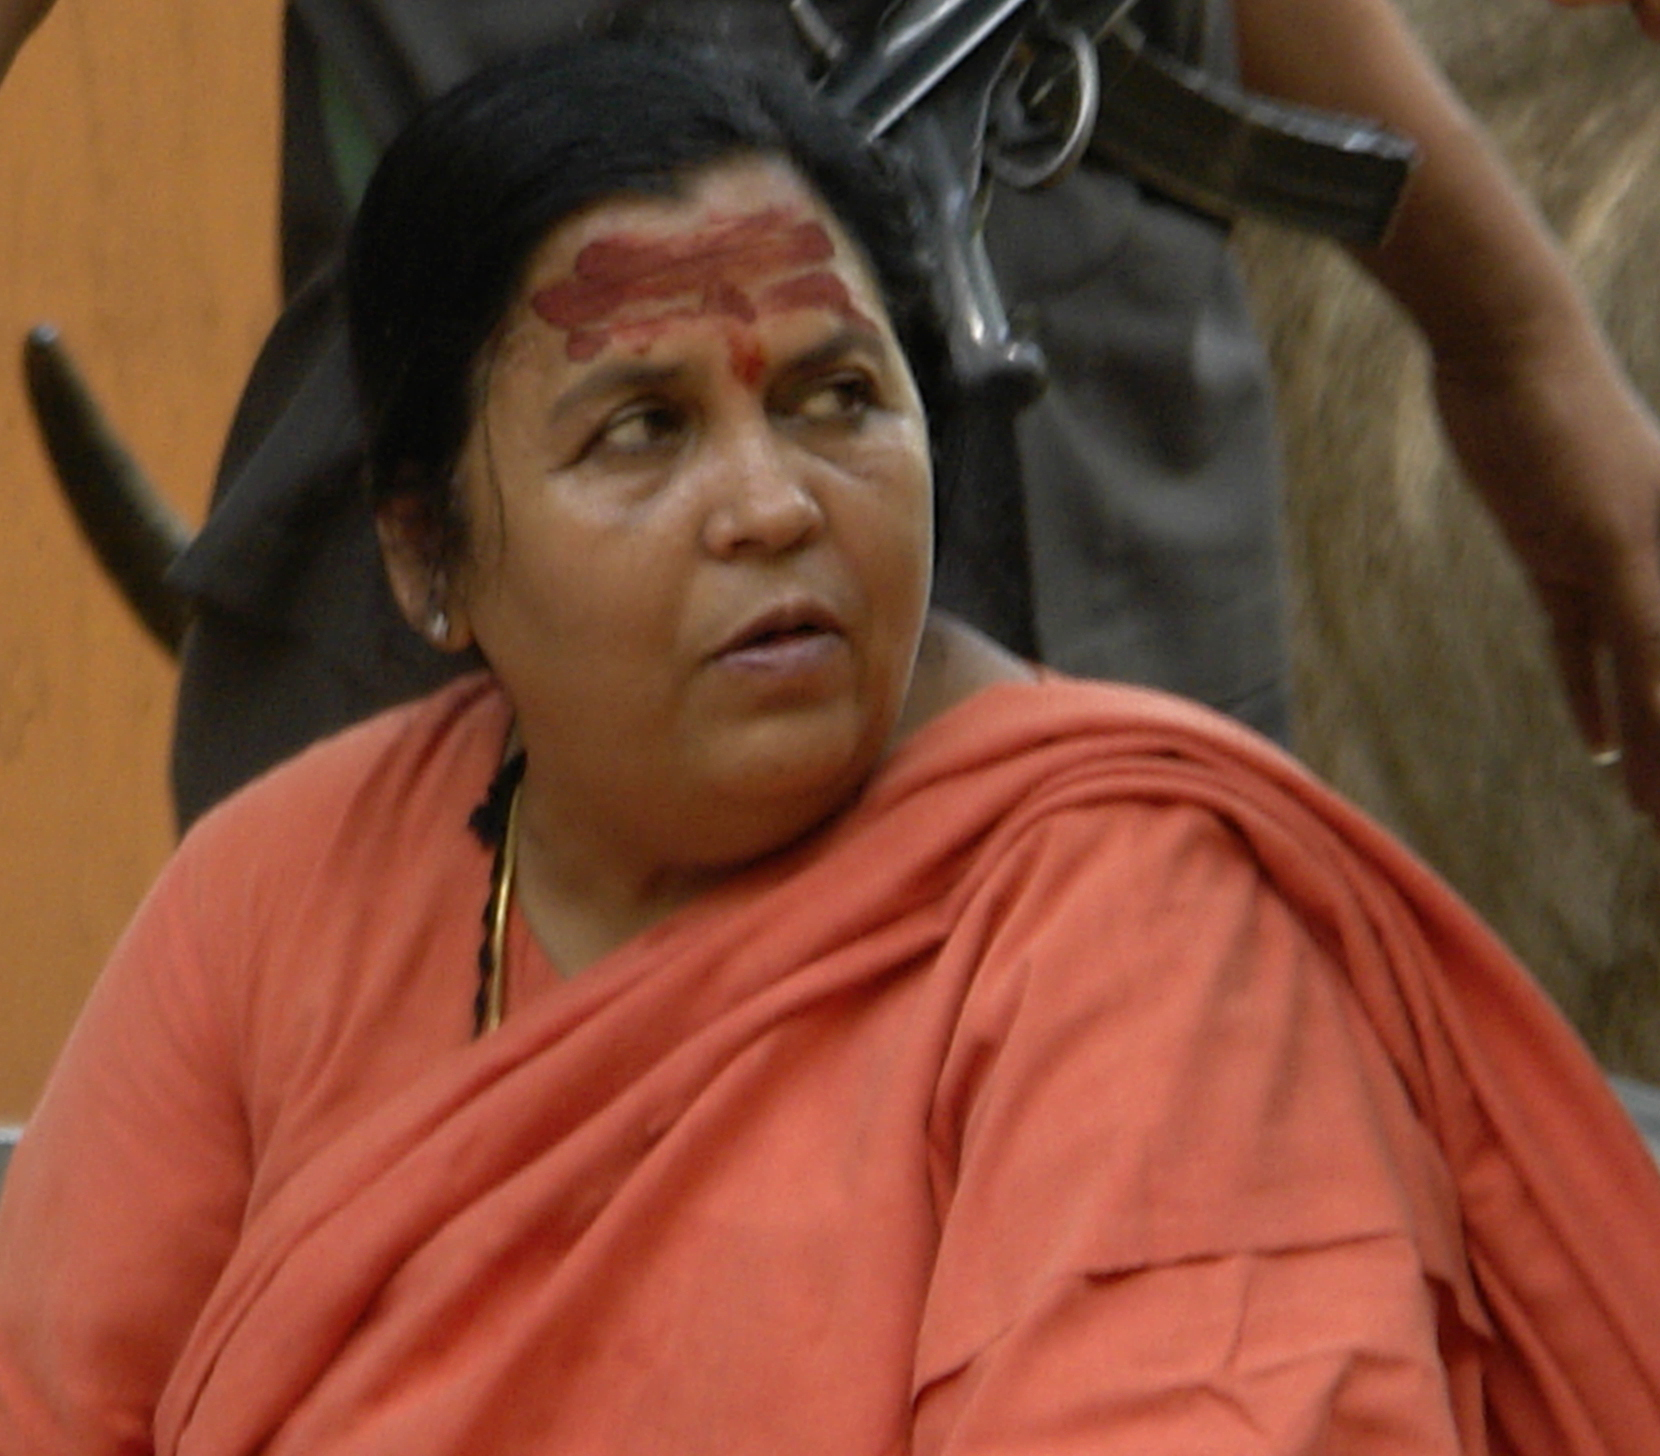 Babri demolition trial: Uma Bharti appears before special court, accuses BJP of framing her